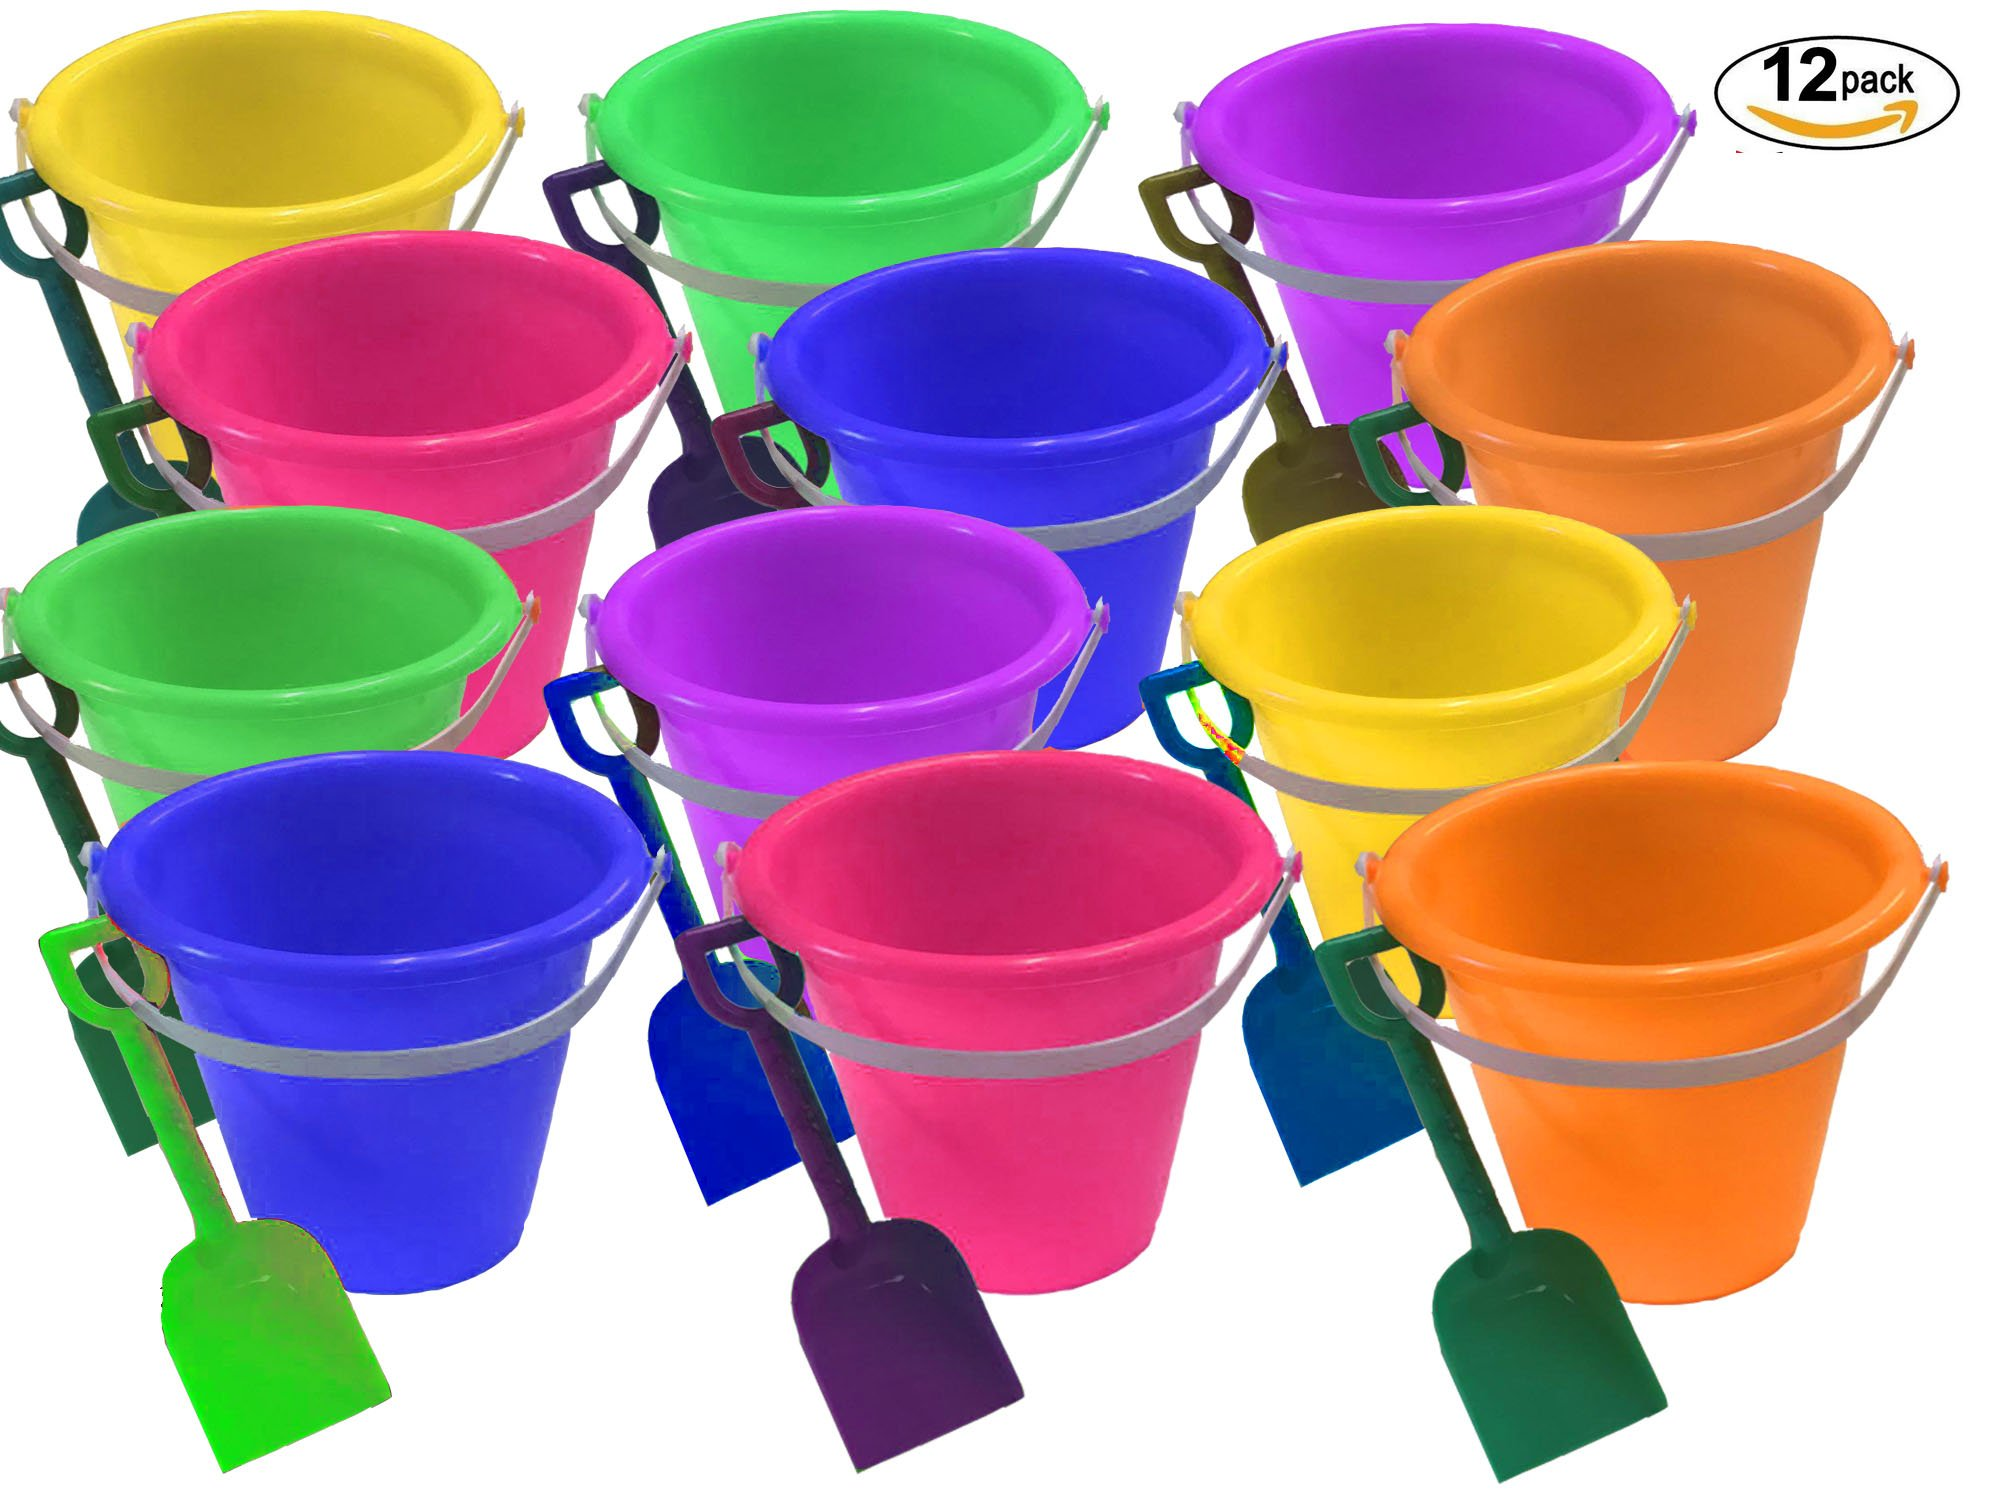 4E's Novelty 1 Dozen Beach Sand Pails and Shovels -9 inch, Assorted Colors, Sand Buckets for Kids, Sand Buckets Large, Great for for Birthday or Mermaid Theme